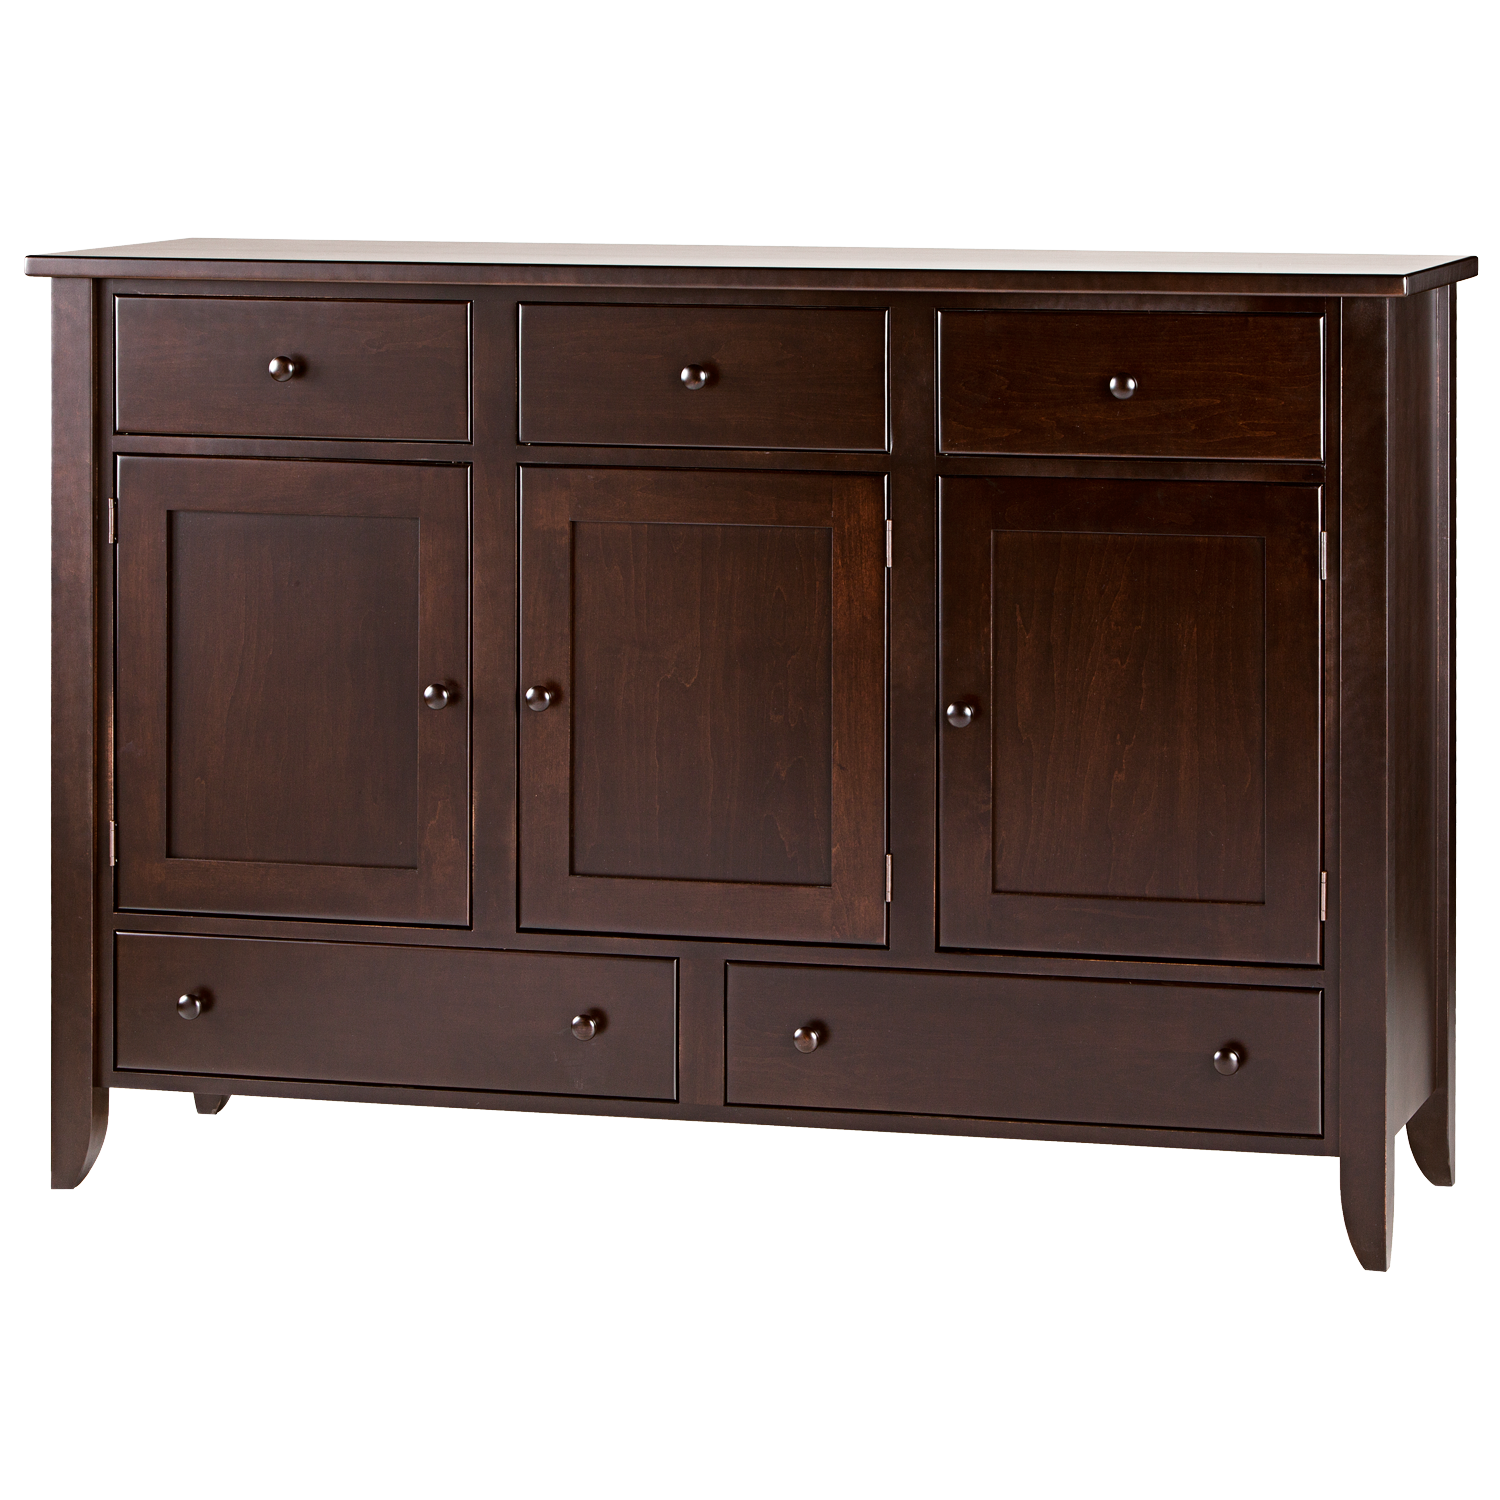 Dining Room Chest Of Drawers: Tapered Leg 5 Drawer 3 Door Dining Chest